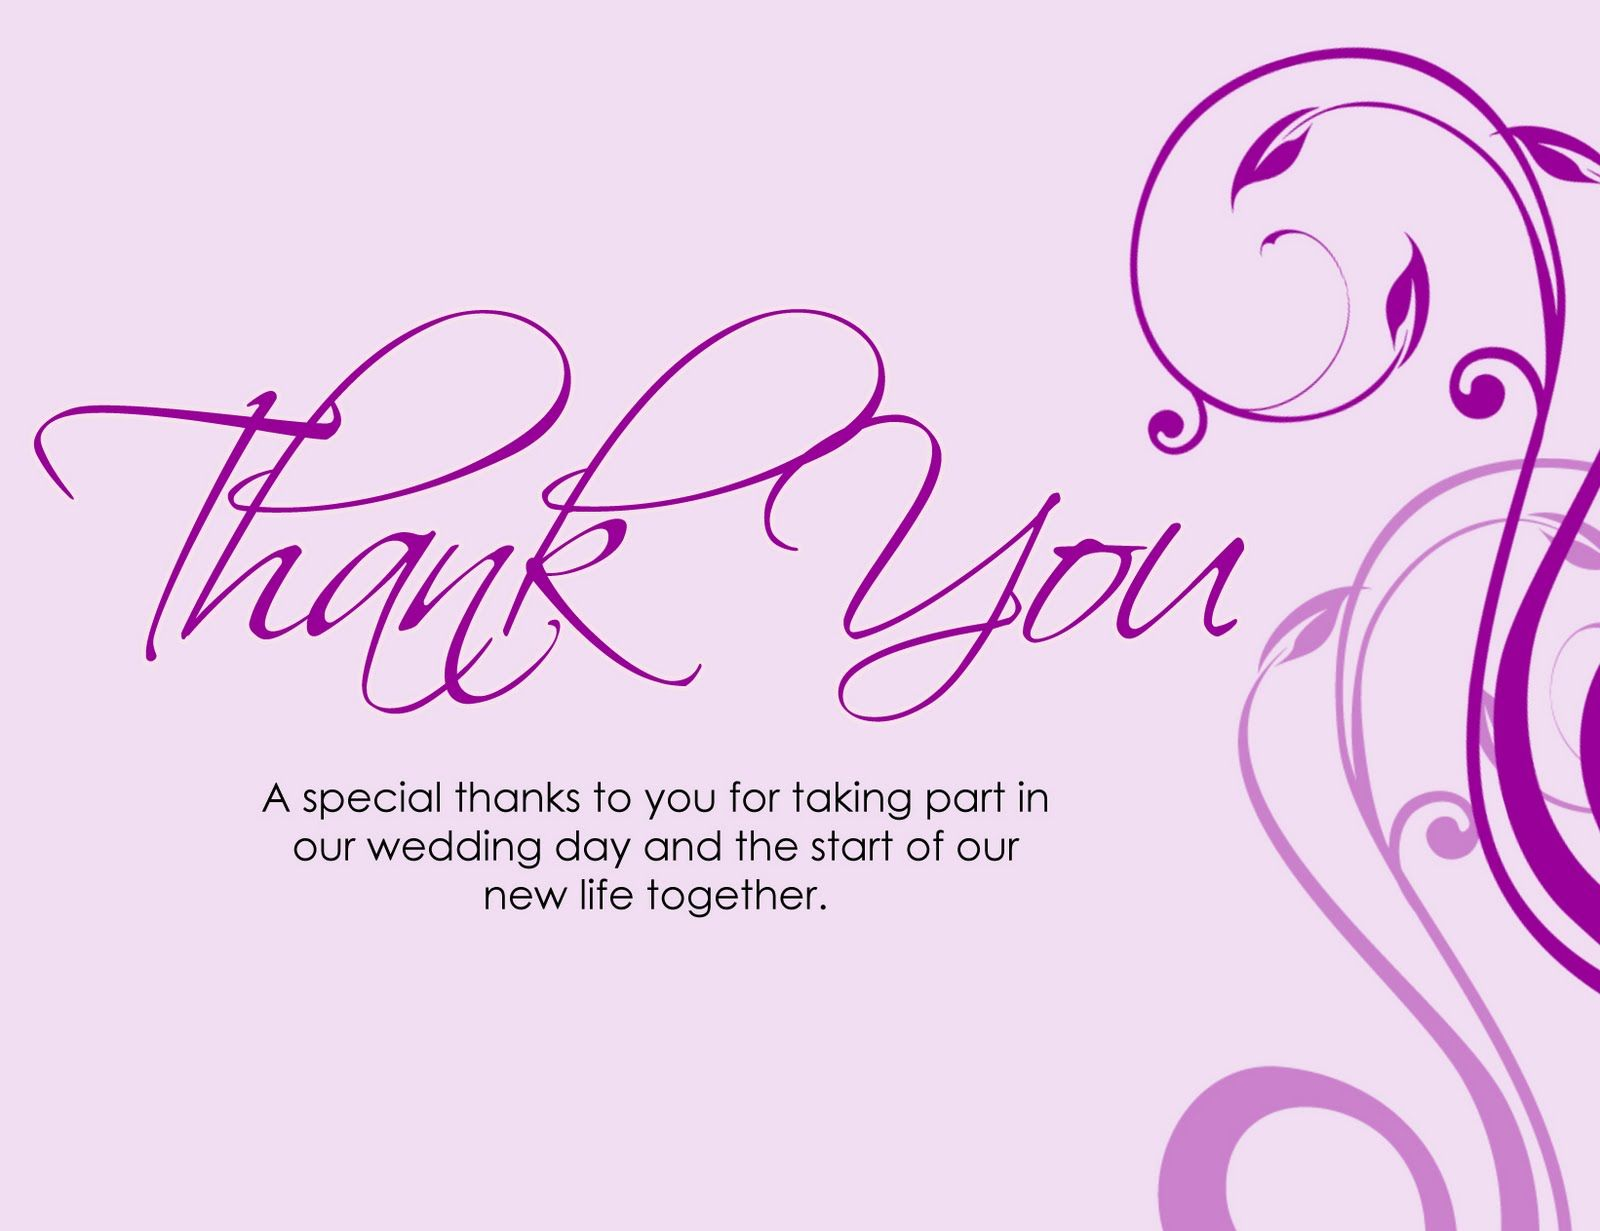 Wedding Anniversary Thank You Cards | Wedding Invitation | Pinterest ...